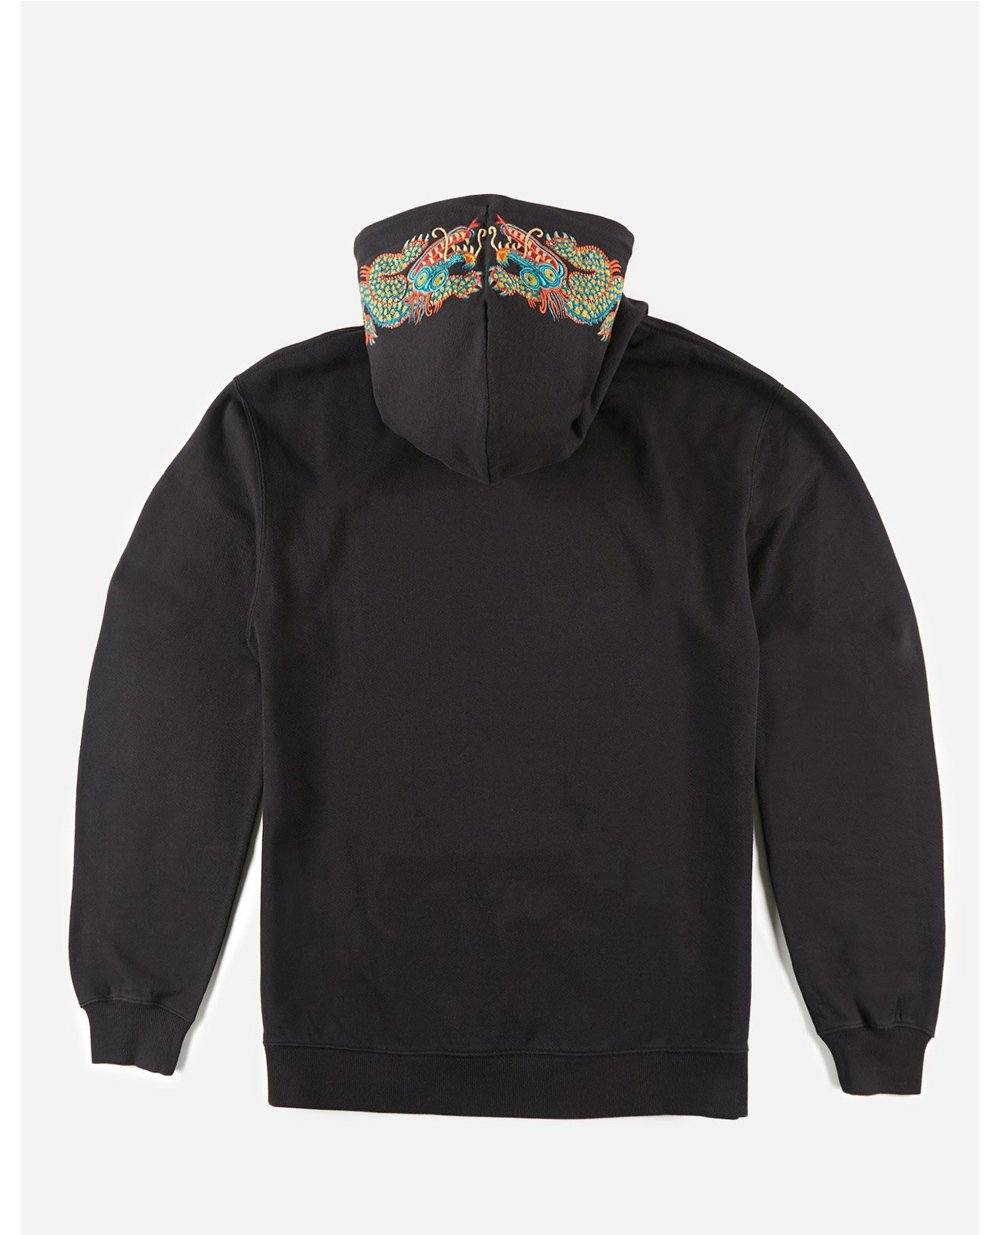 MAHARISHI Liberty Dragon Hooded Sweatshirt Black